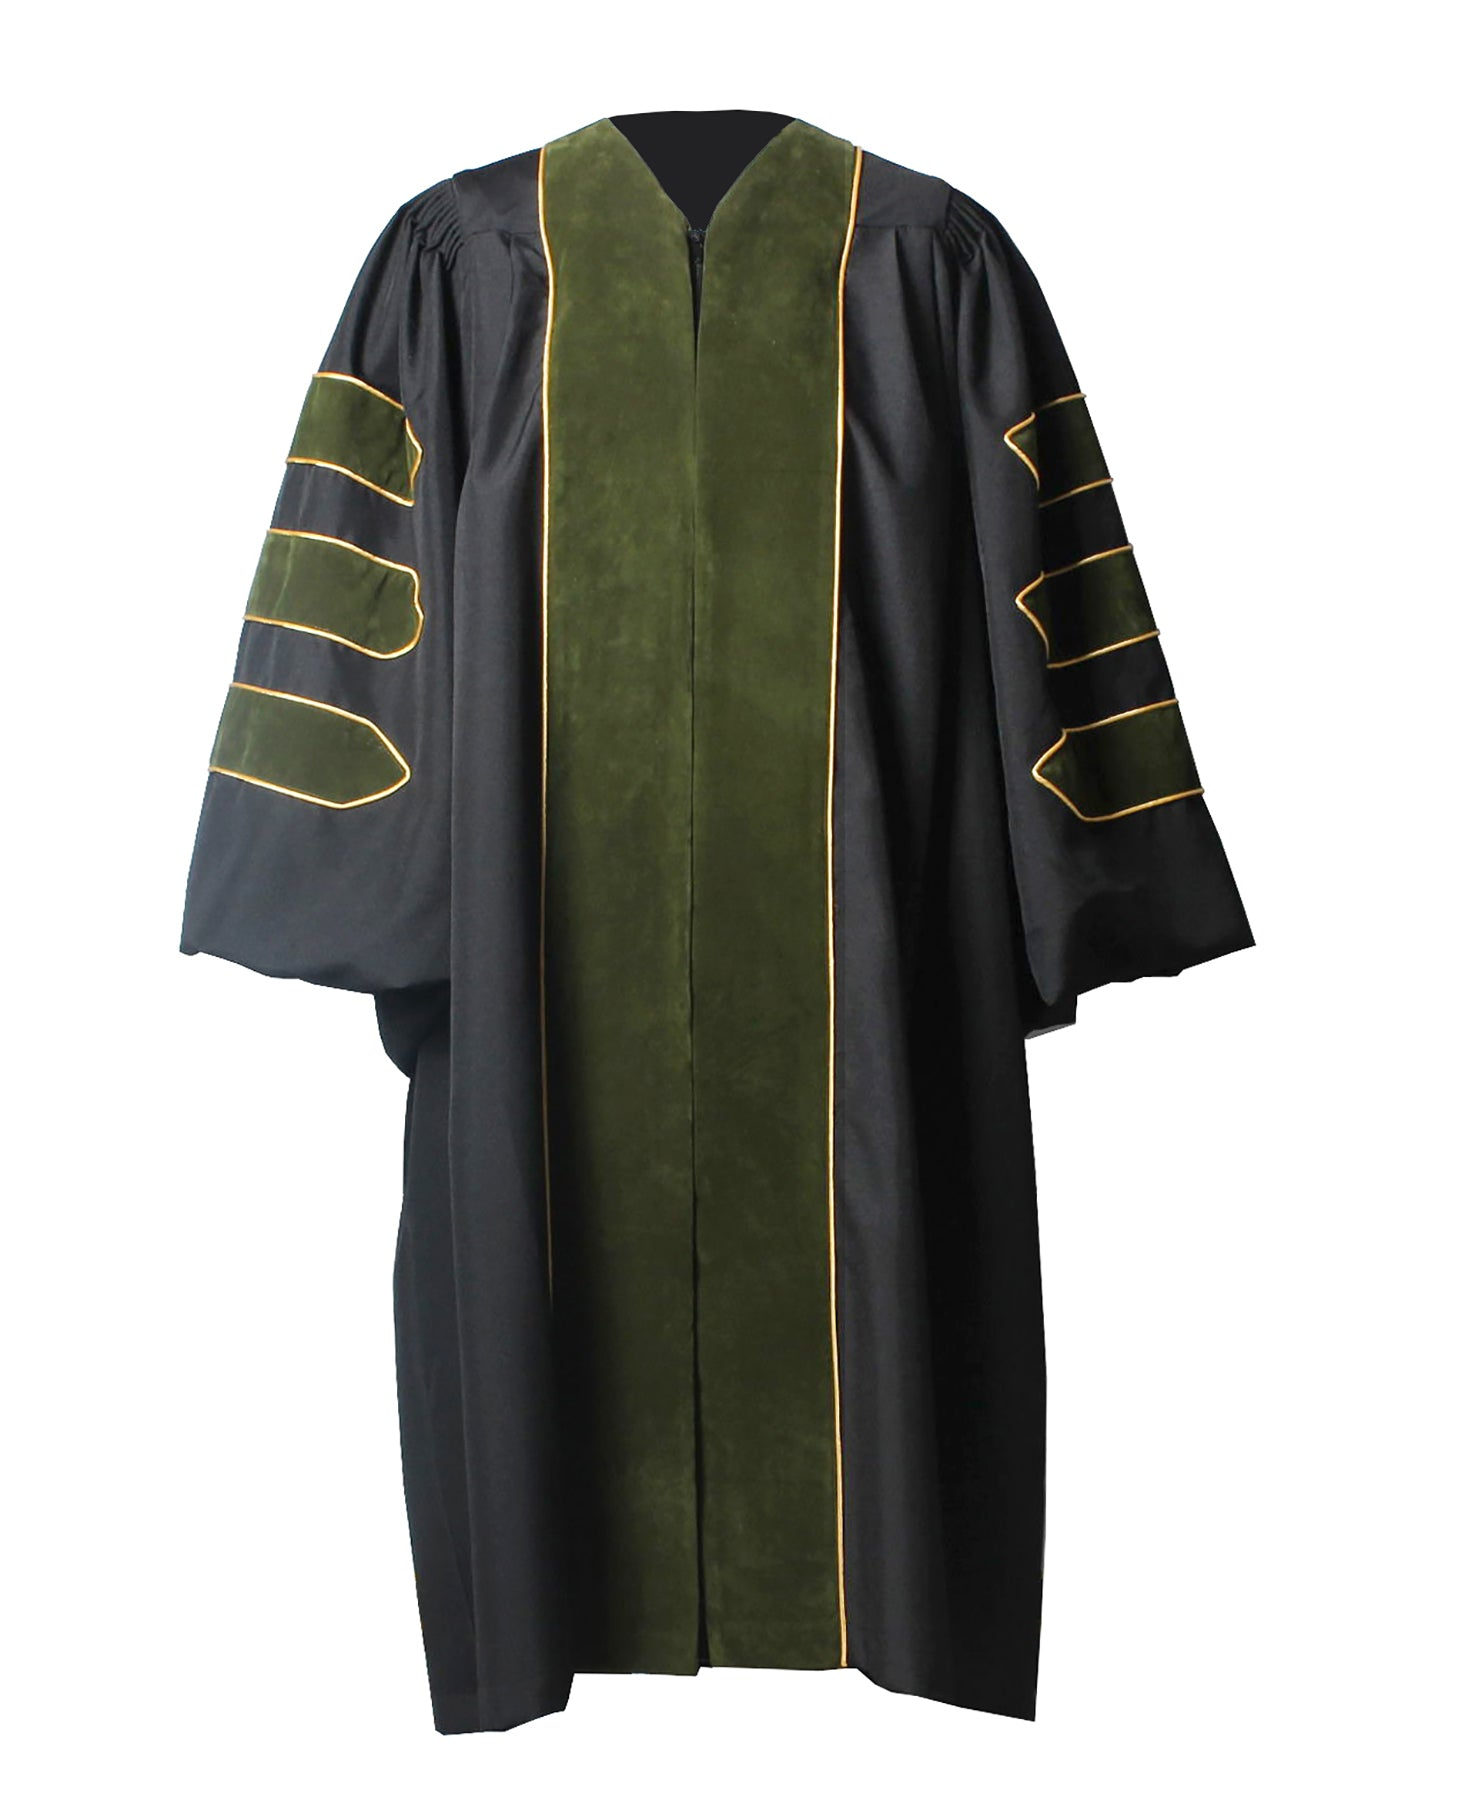 Deluxe Forest Geen Doctoral Graduation Gown Regalia Doctoral Gown Only with Gold Piping